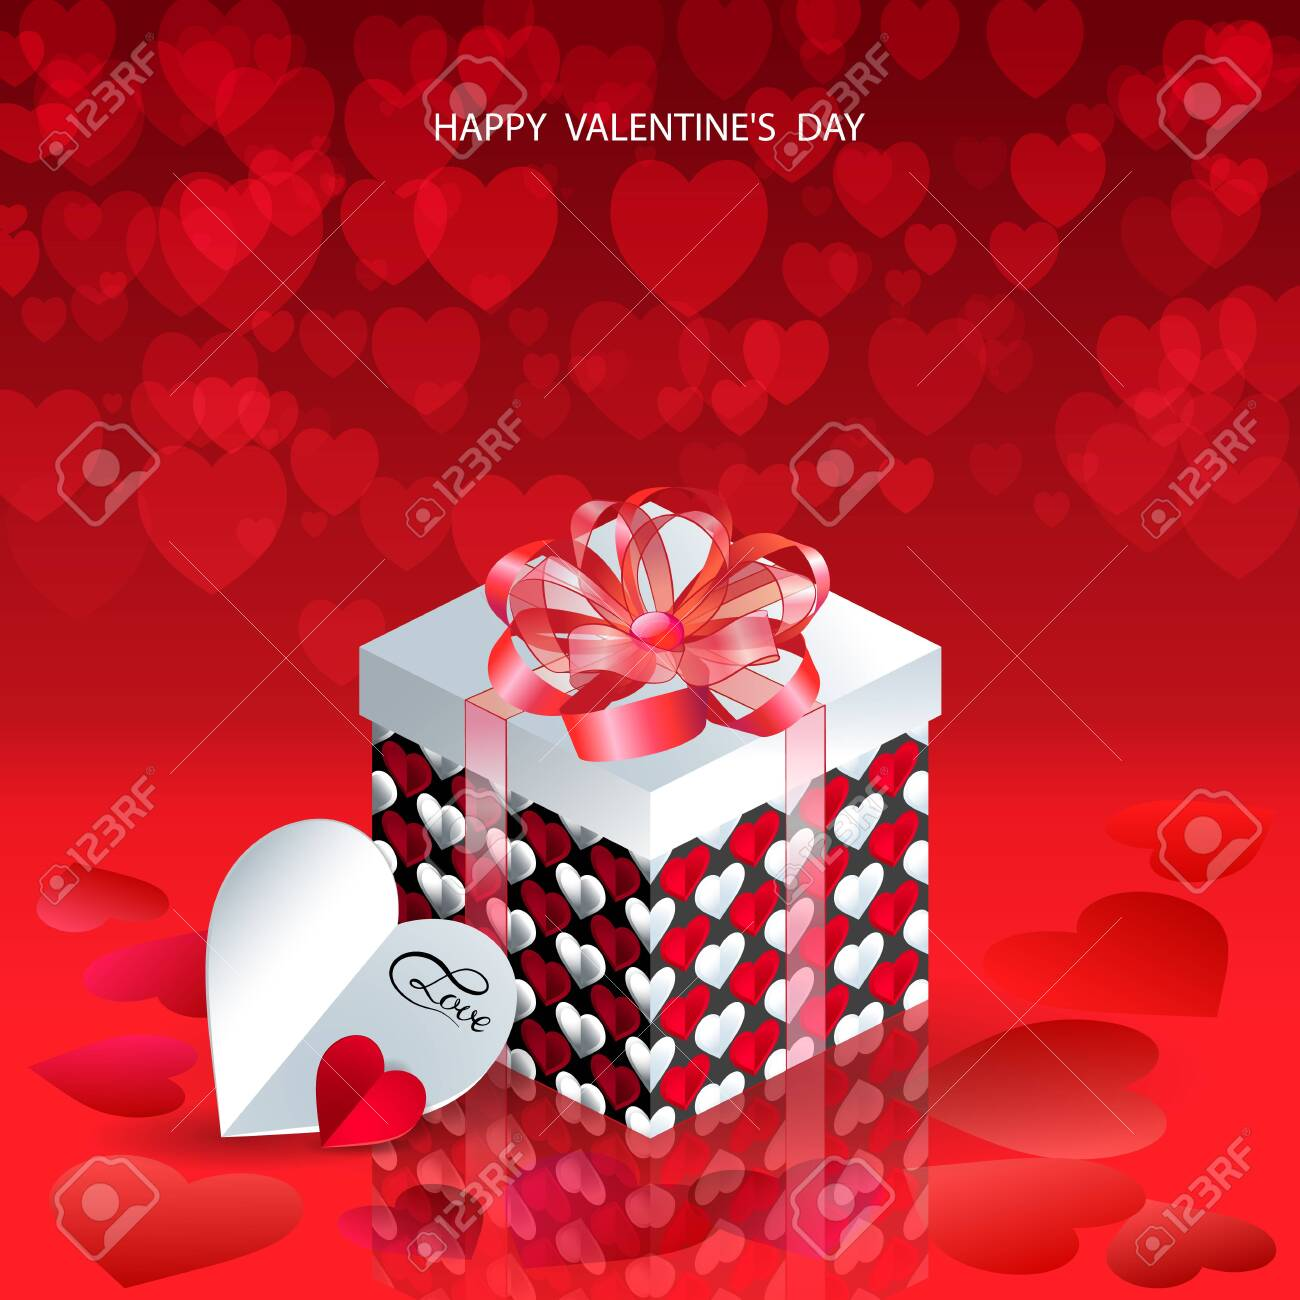 Happy Valentines Day Valentines Day Gift Box Red Hearts Coming Stock Photo Picture And Royalty Free Image Image 121768066